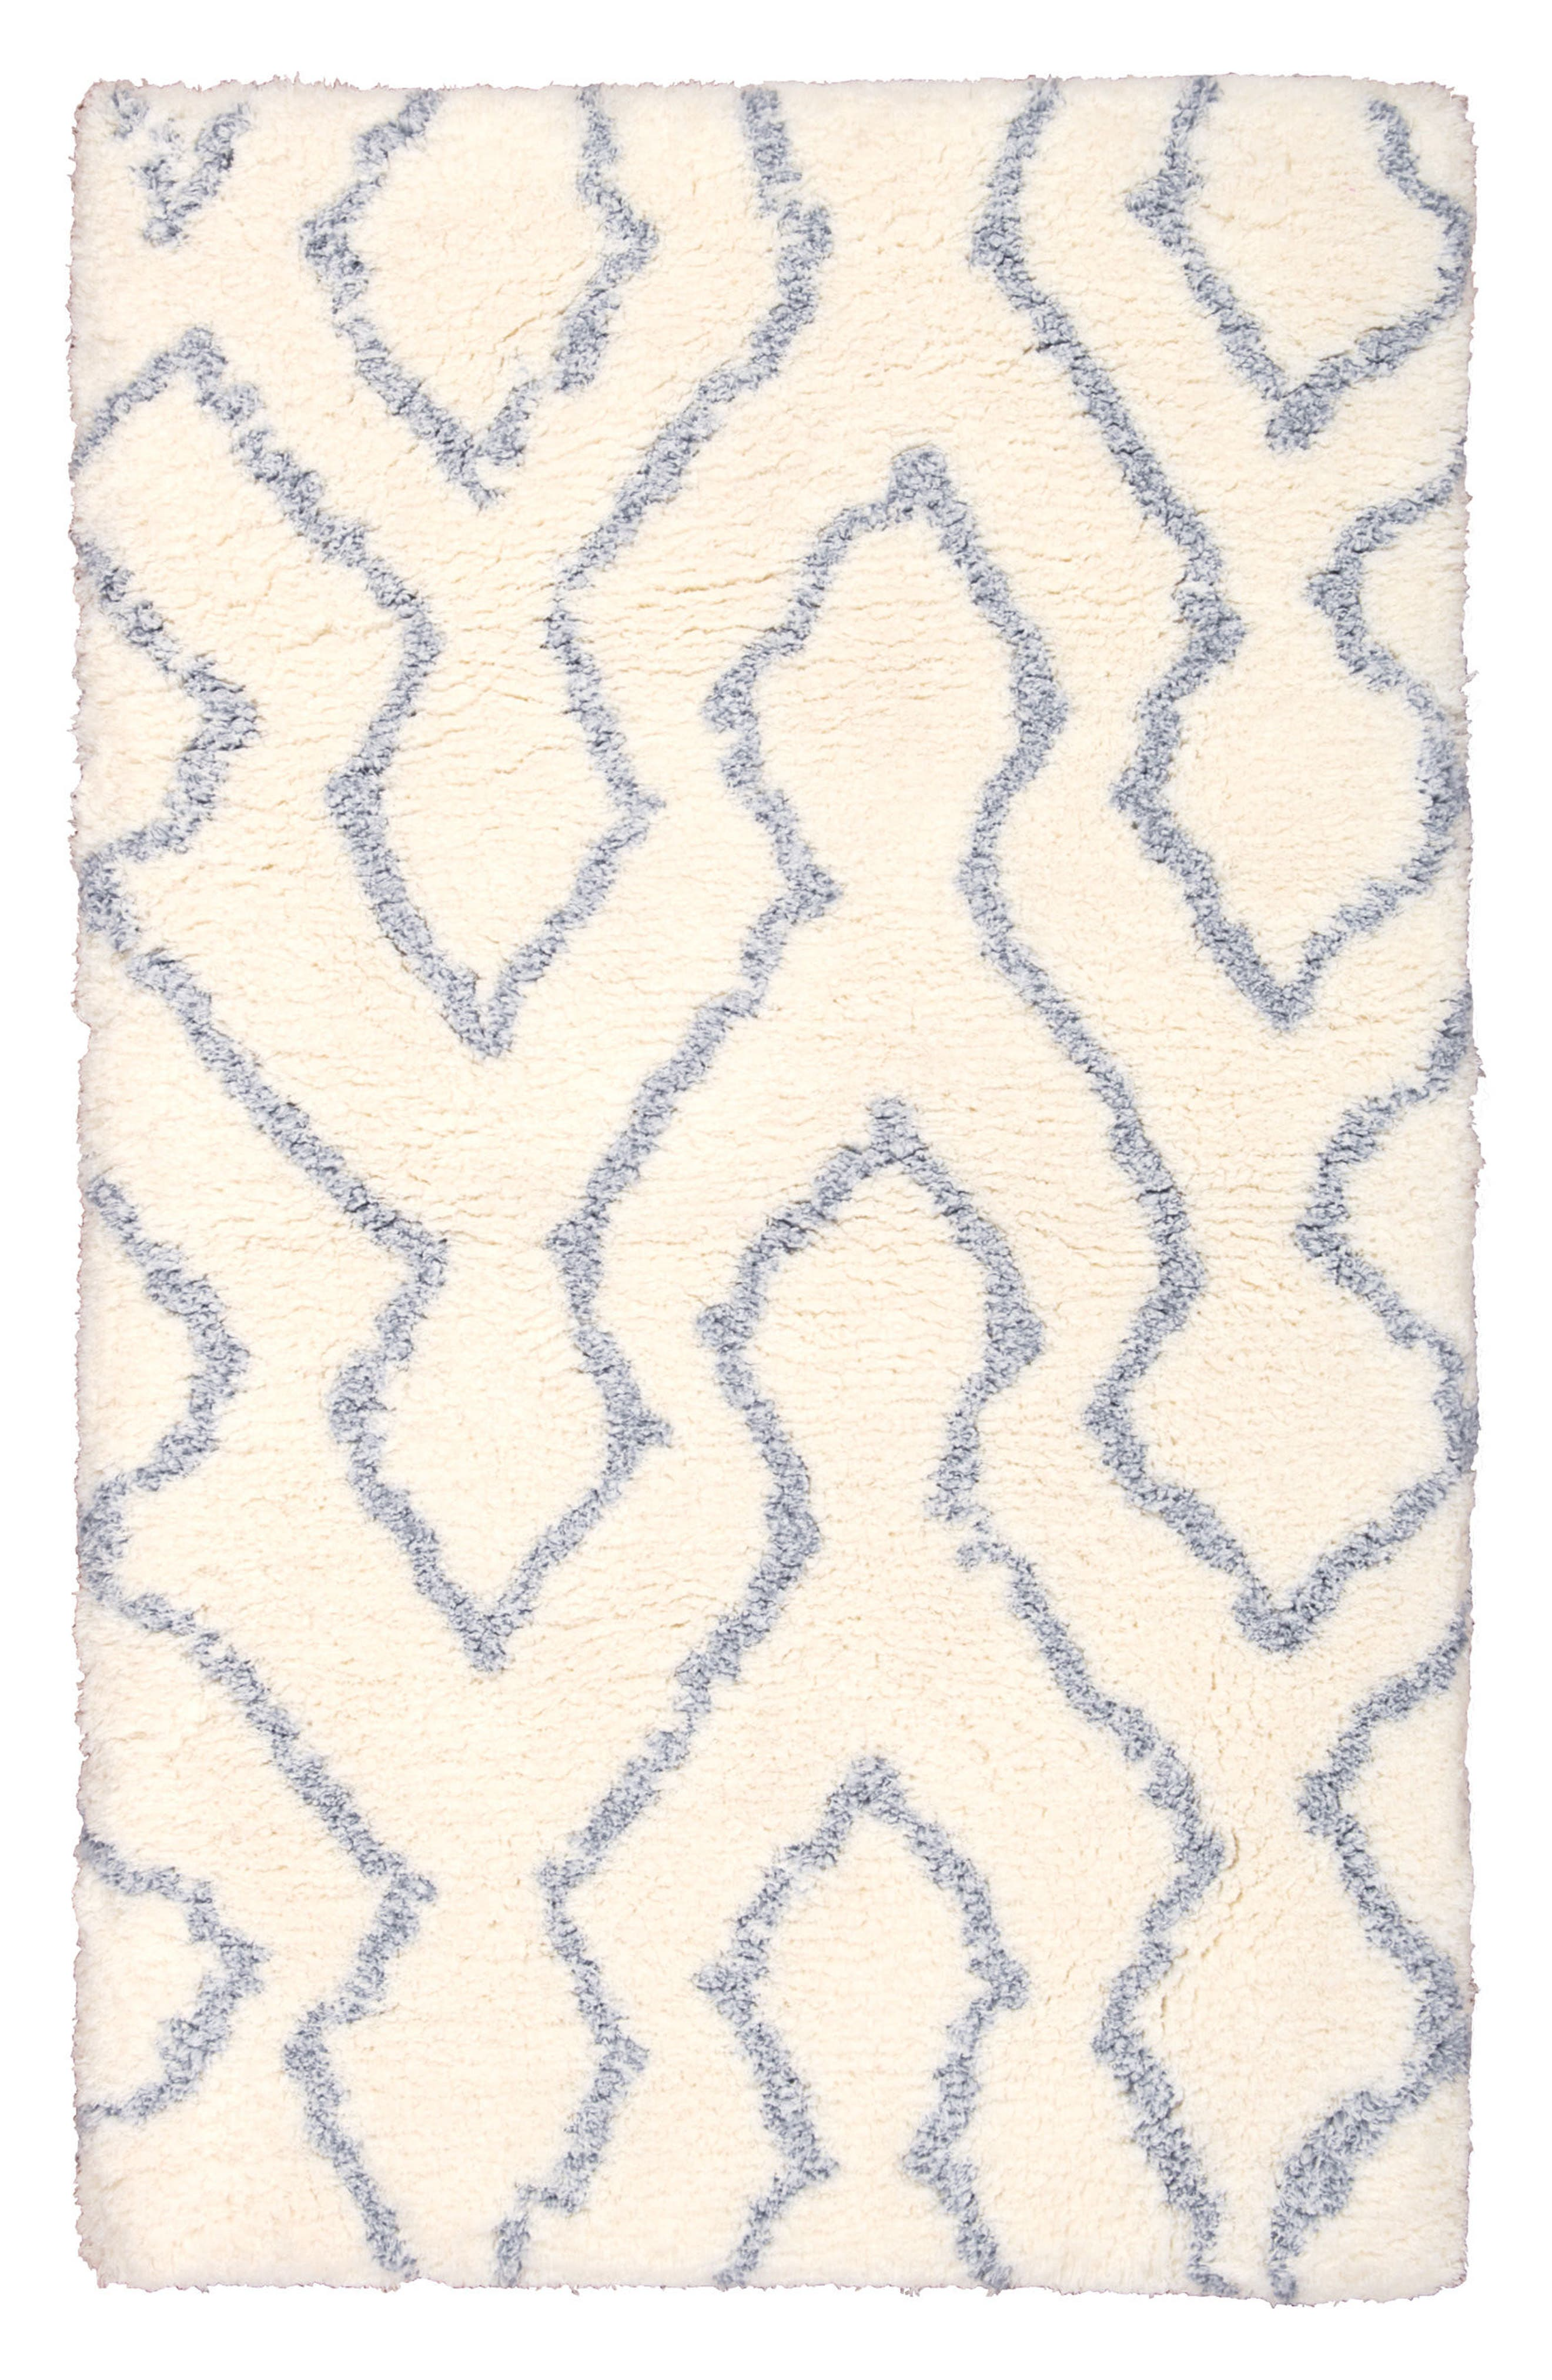 Channel Rug,                         Main,                         color, Ivory Blue